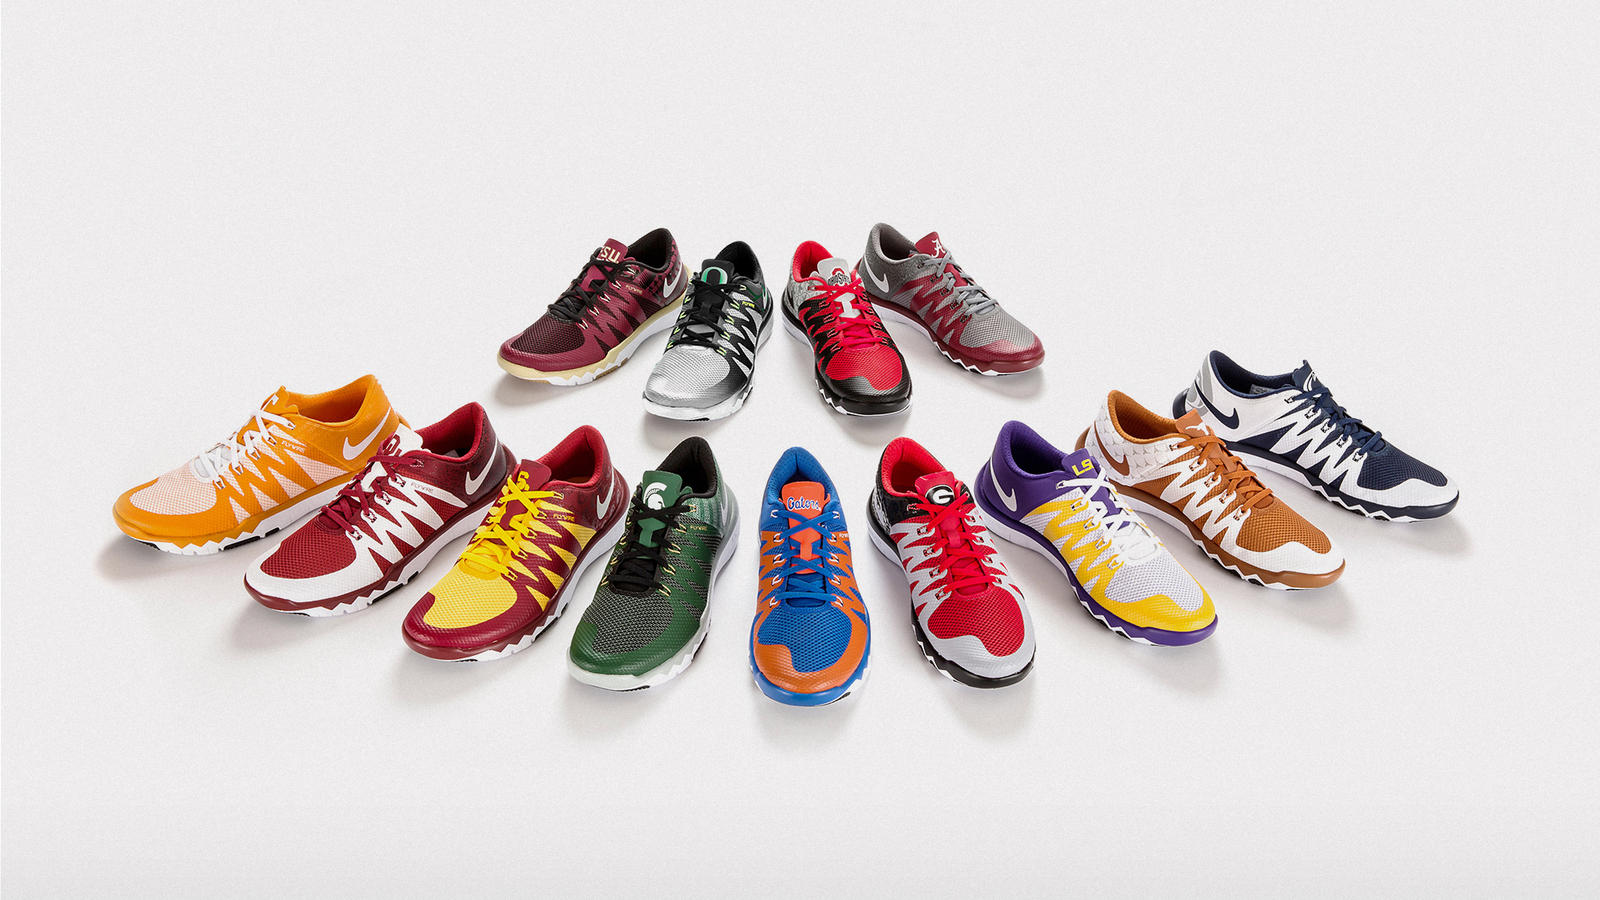 Nike football zero week school collection 7 hd 1600